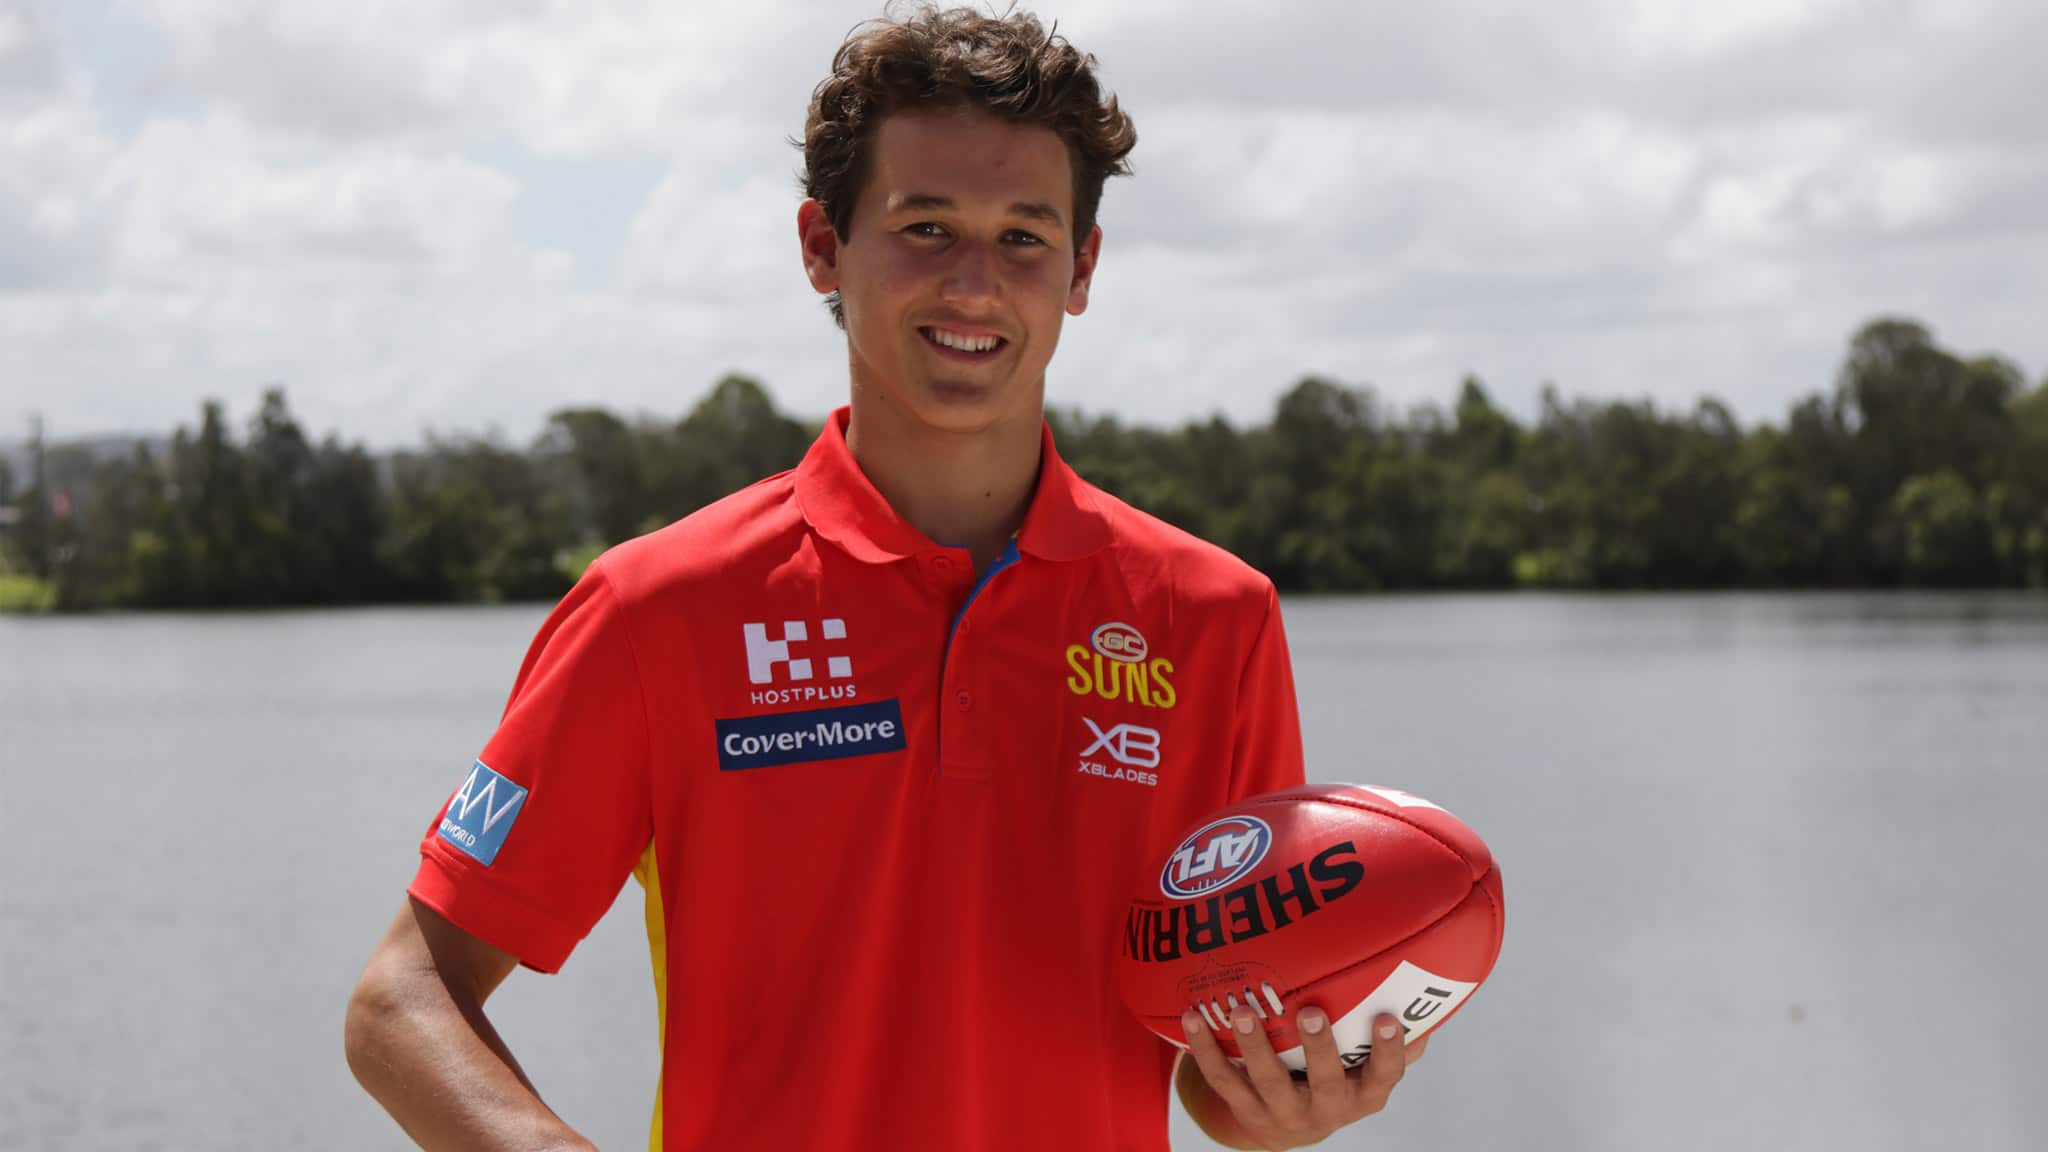 Wil Powell was a surprise first-round draft selection for the Suns. Picture: Gold Coast - AFL,Gold Coast Suns,Wil Powell,Draft,Stuart Dew